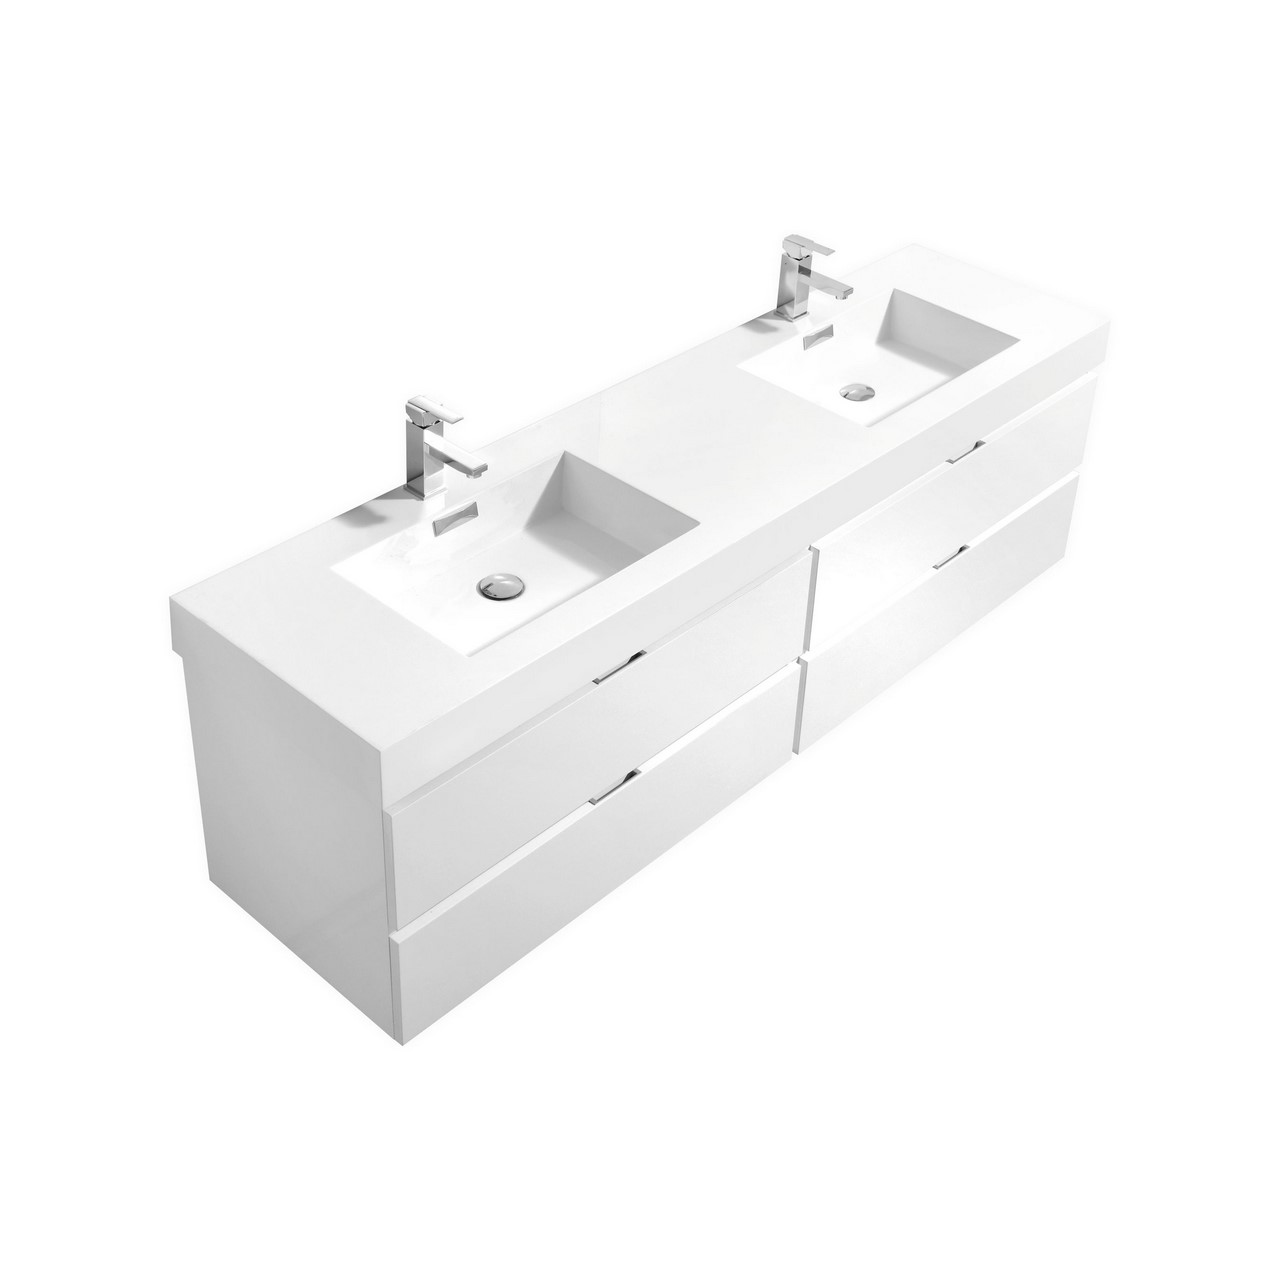 "Modern Lux 80"" Double Sink High Gloss White Wall Mount Modern Bathroom Vanity"